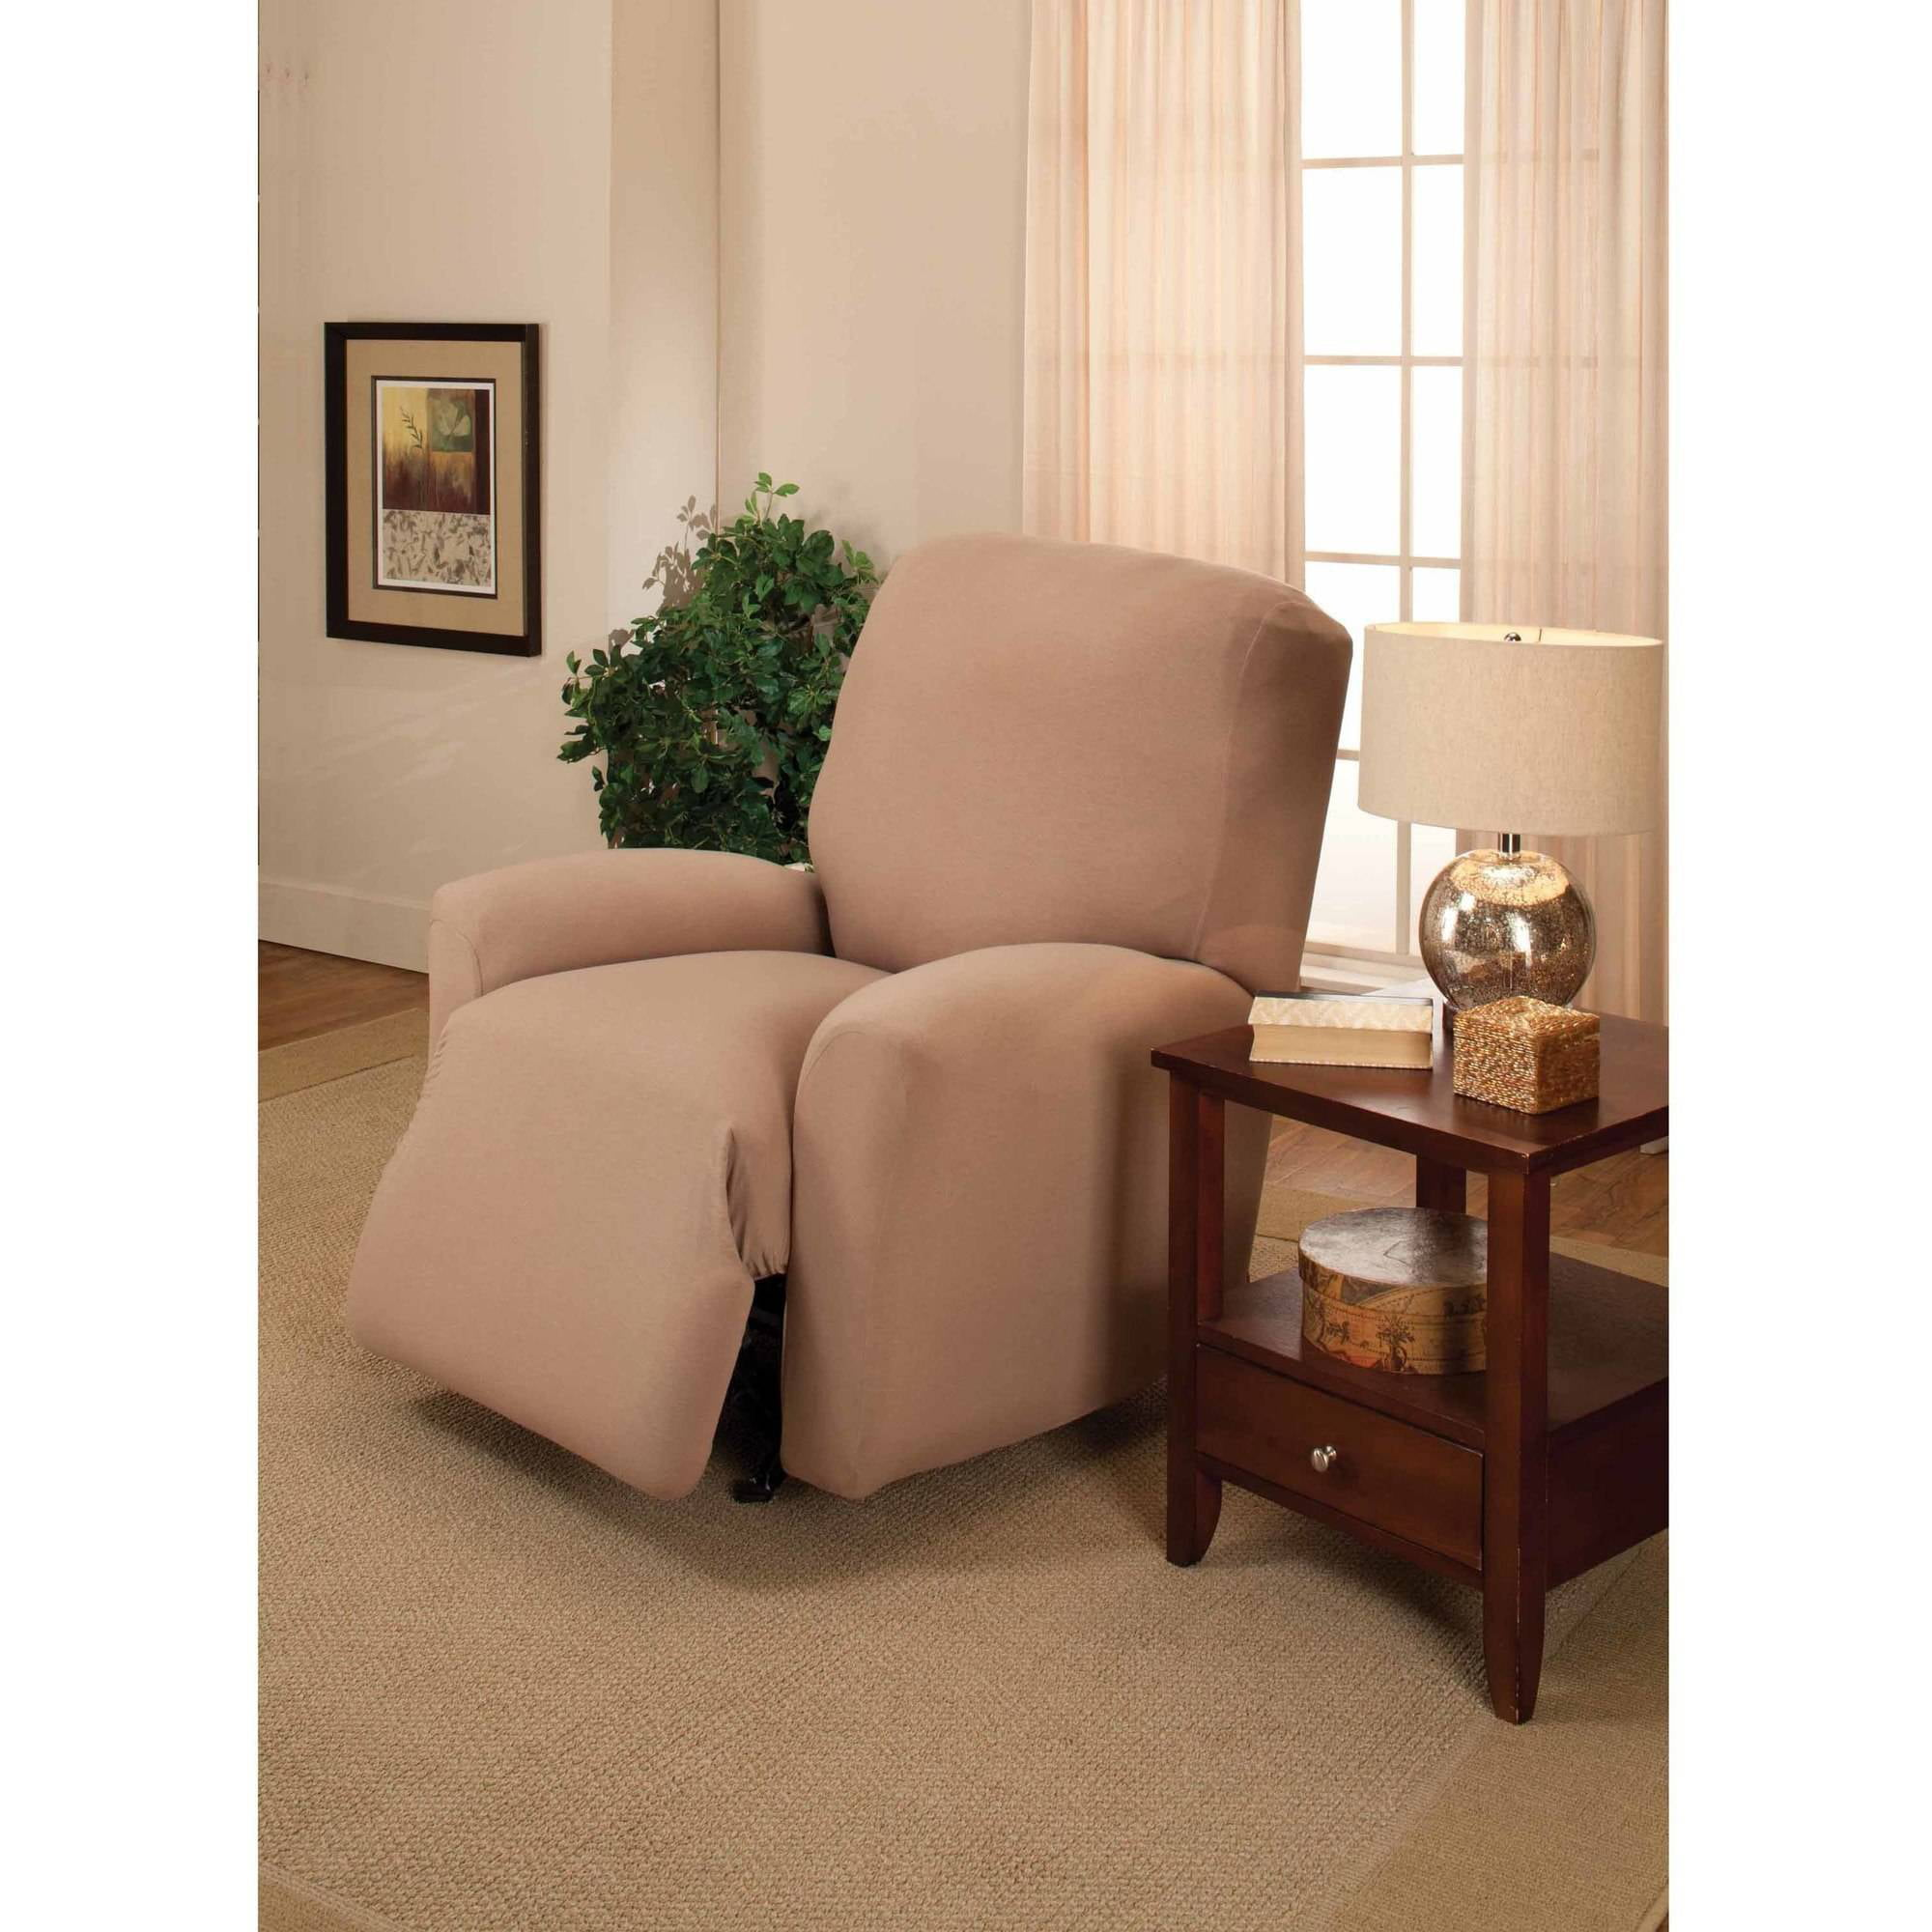 Jersey Stretch Large Recliner Slipcover  sc 1 st  Walmart : lane recliner slipcovers - islam-shia.org